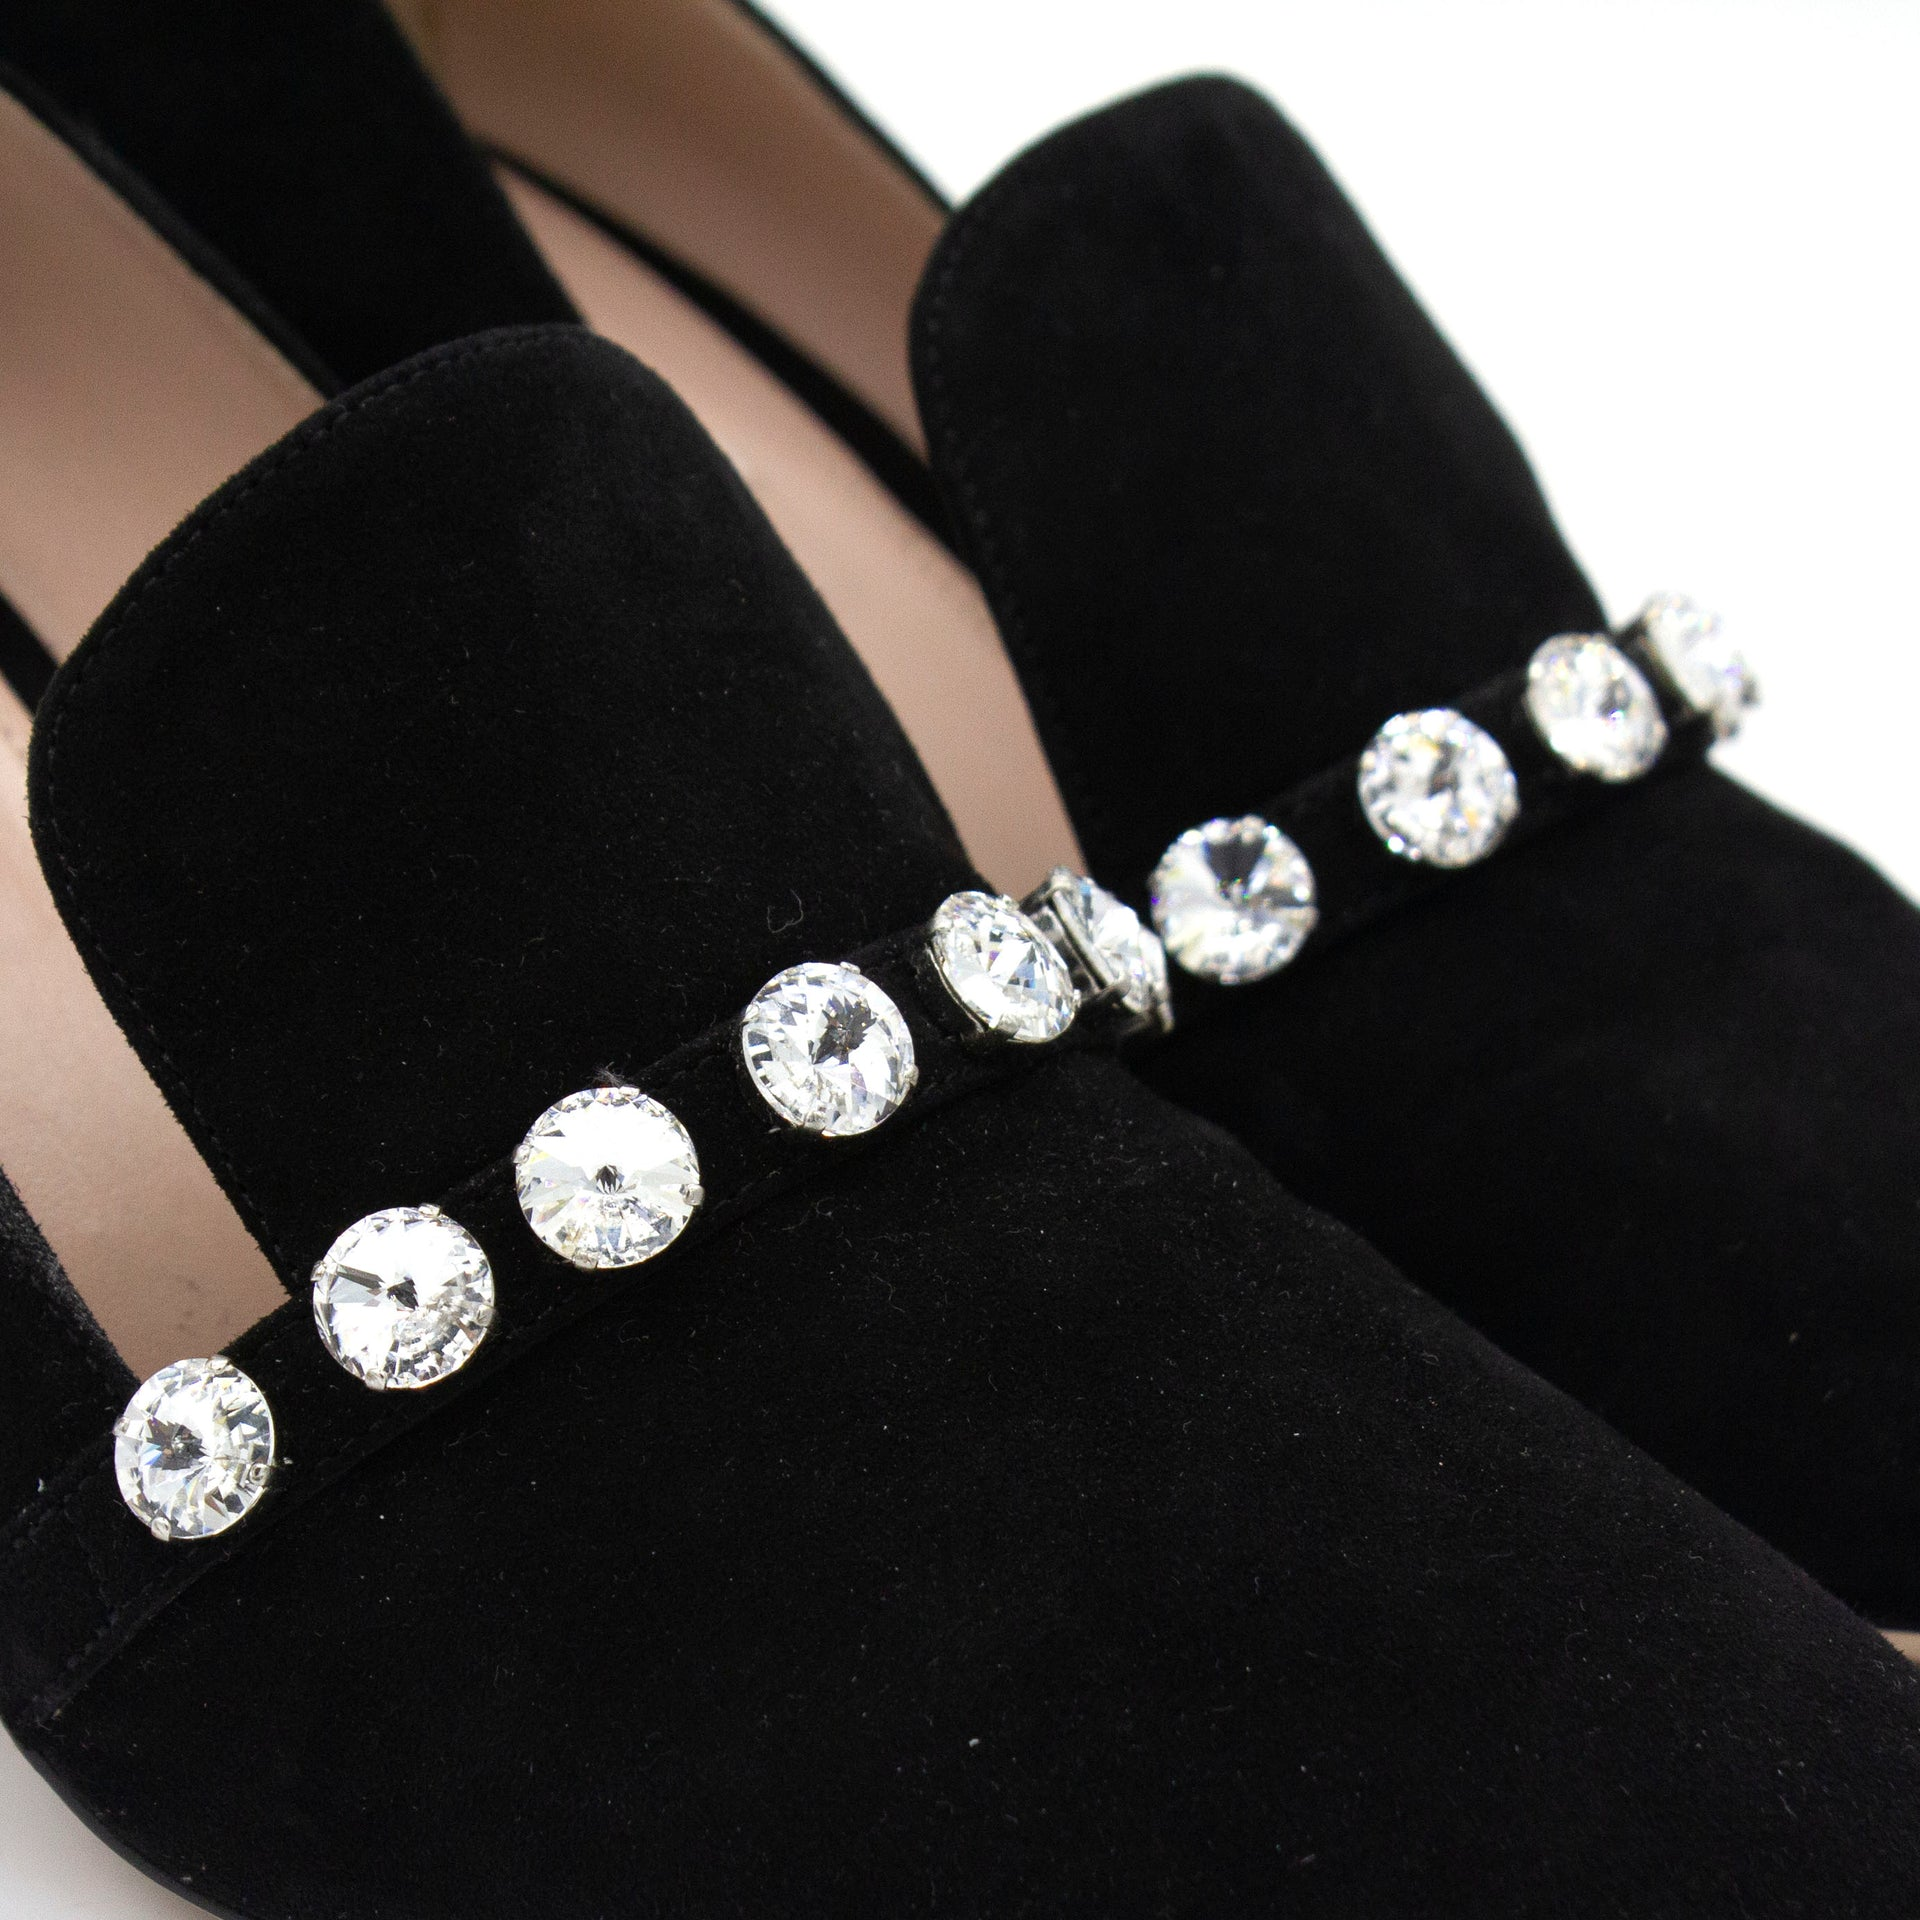 crystal embellished pumps